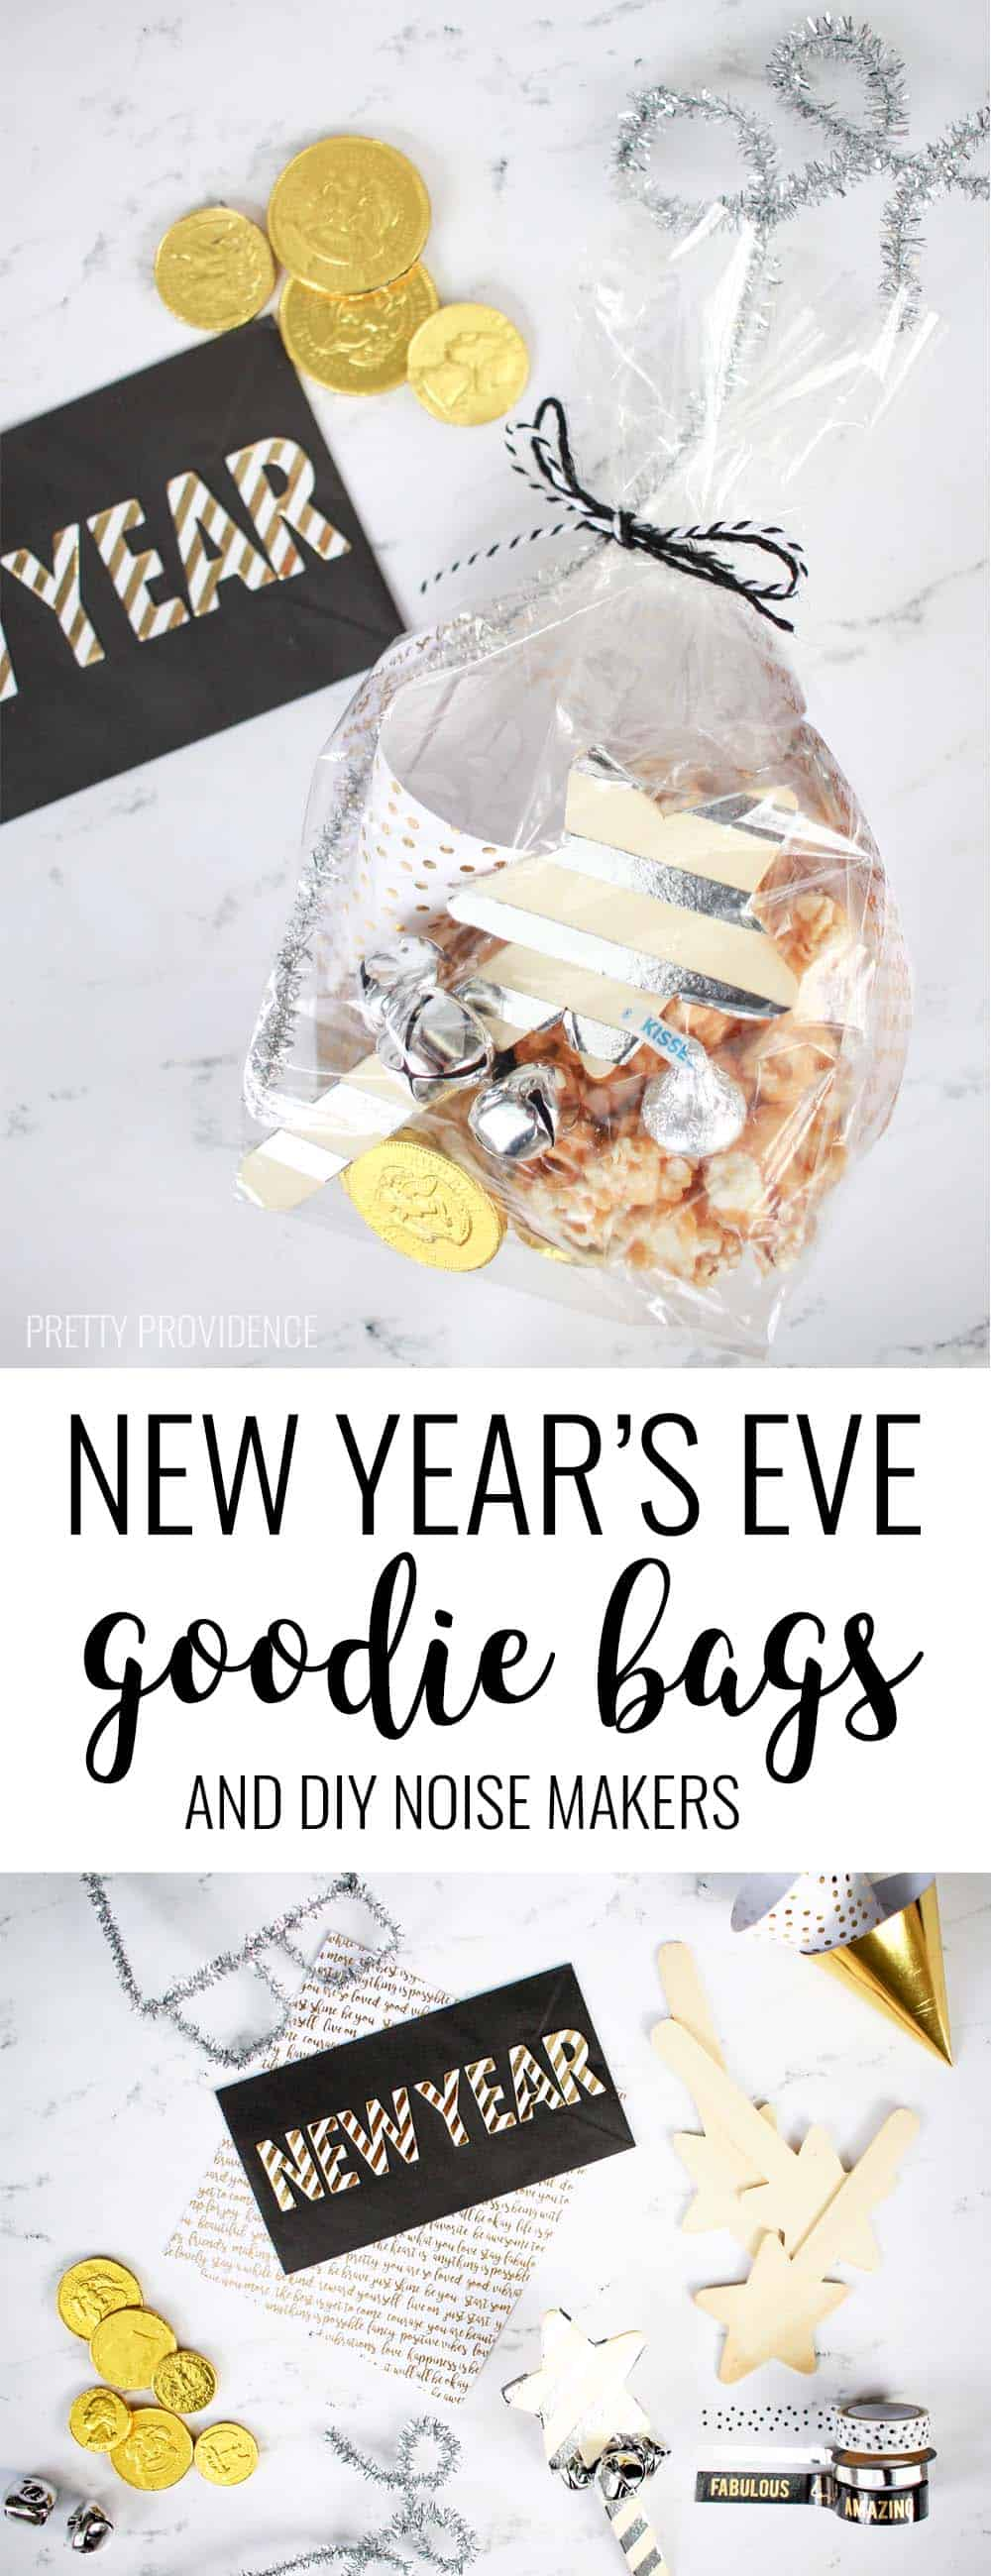 These New Year's Eve goodie bags are simple, fun and good for kids or adults! Filled with treats and noisemakers for NYE fun!